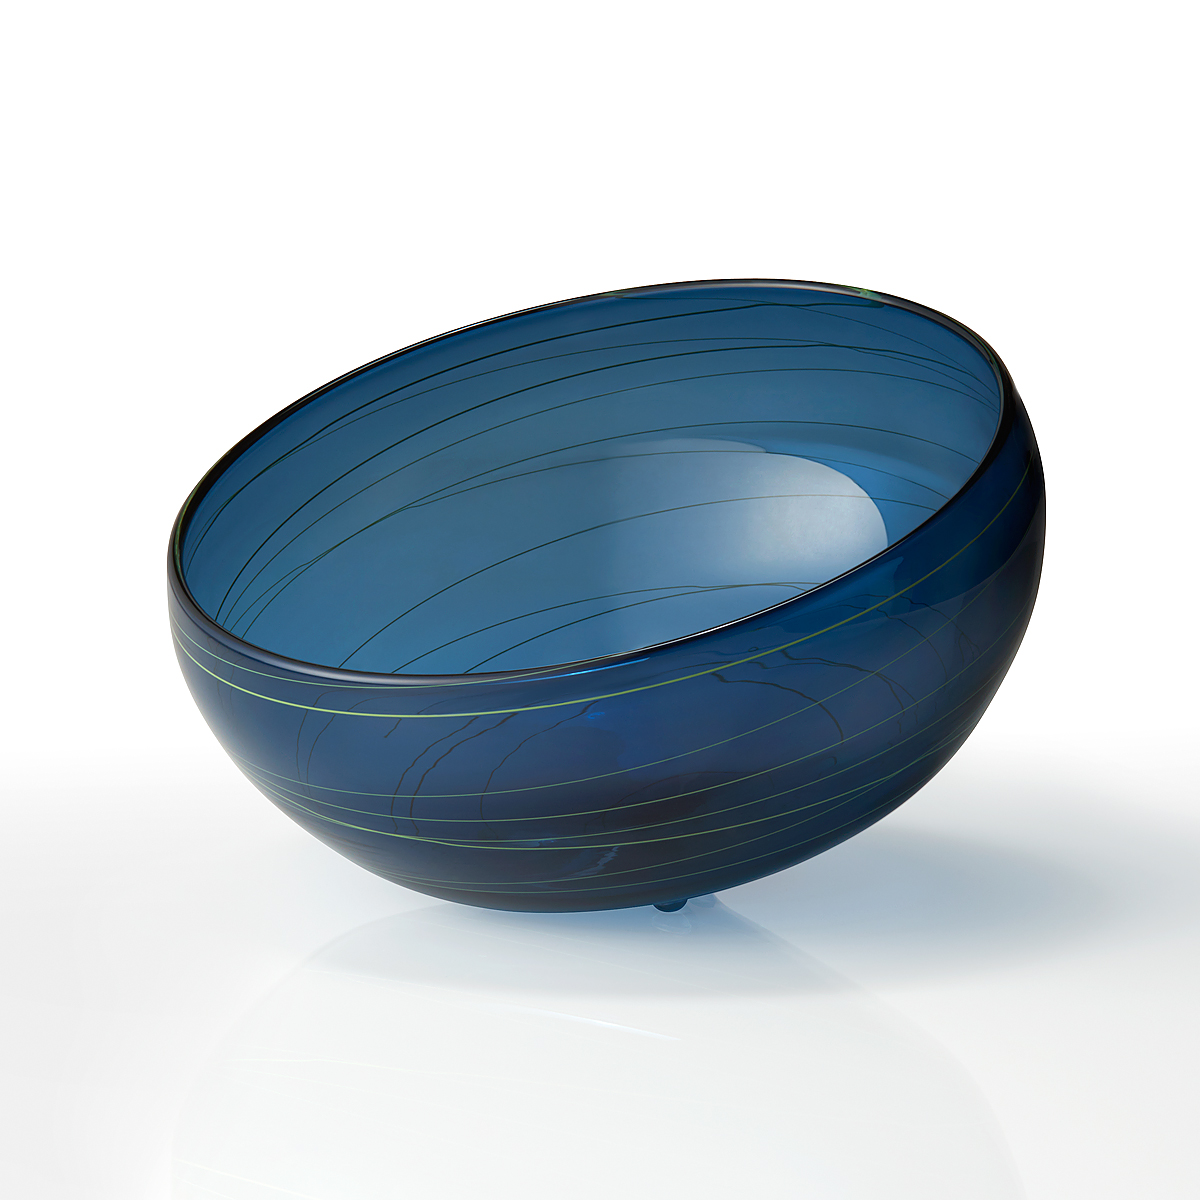 LIGNE Bowl Small Blue-5.jpg